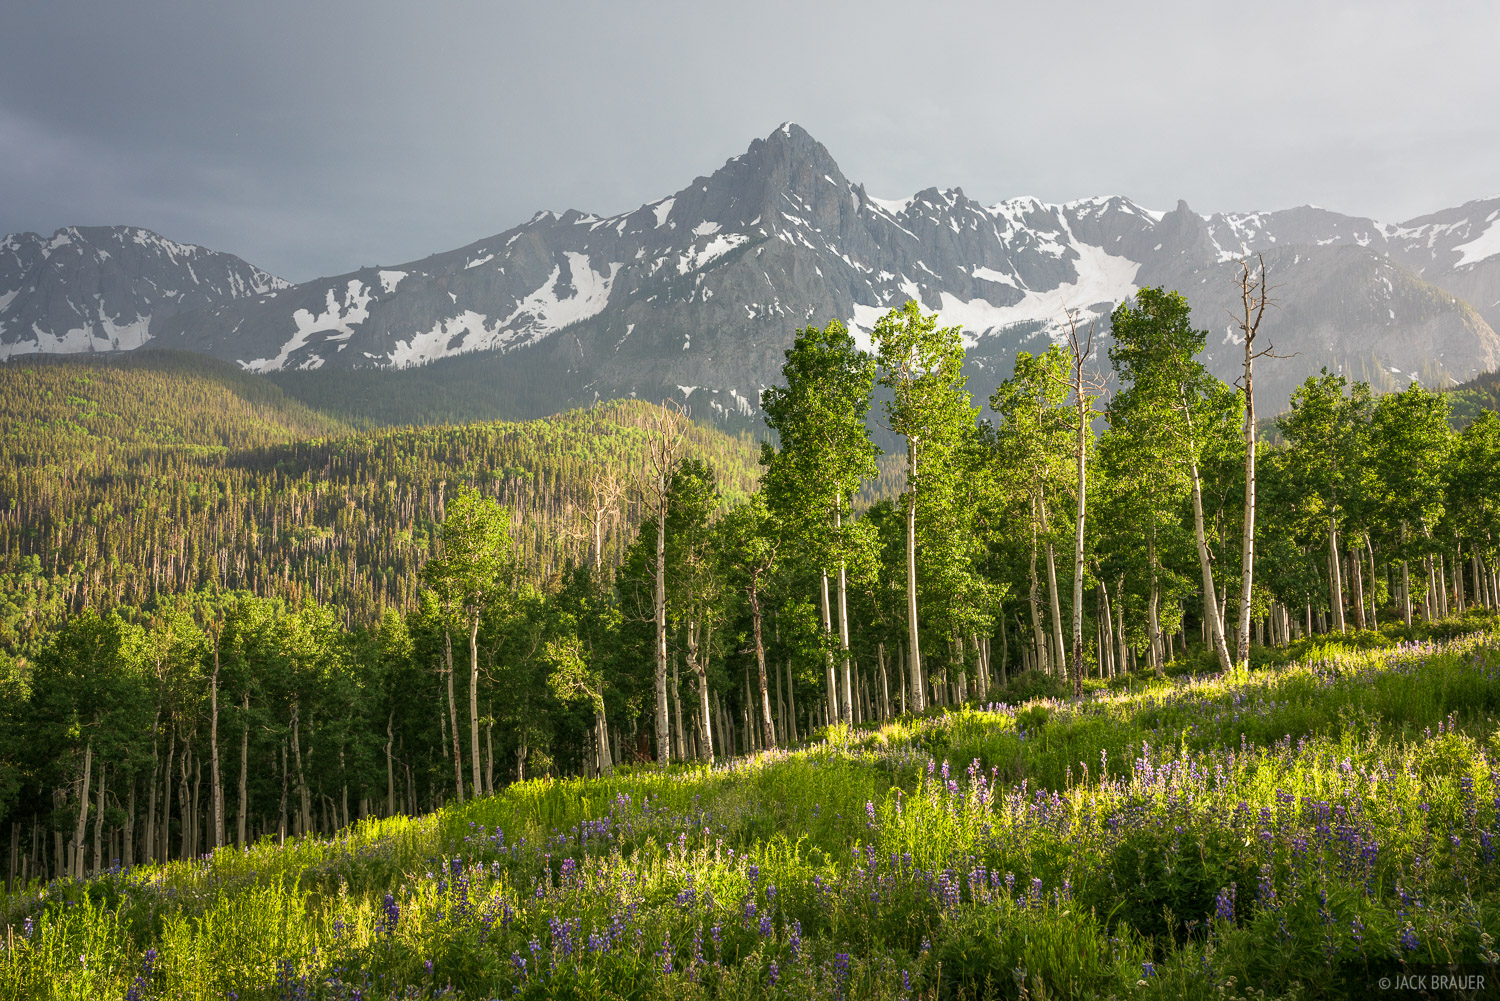 Late afternoon light streams through the aspens and lupine meadows below peak S9 in the Sneffels Range.